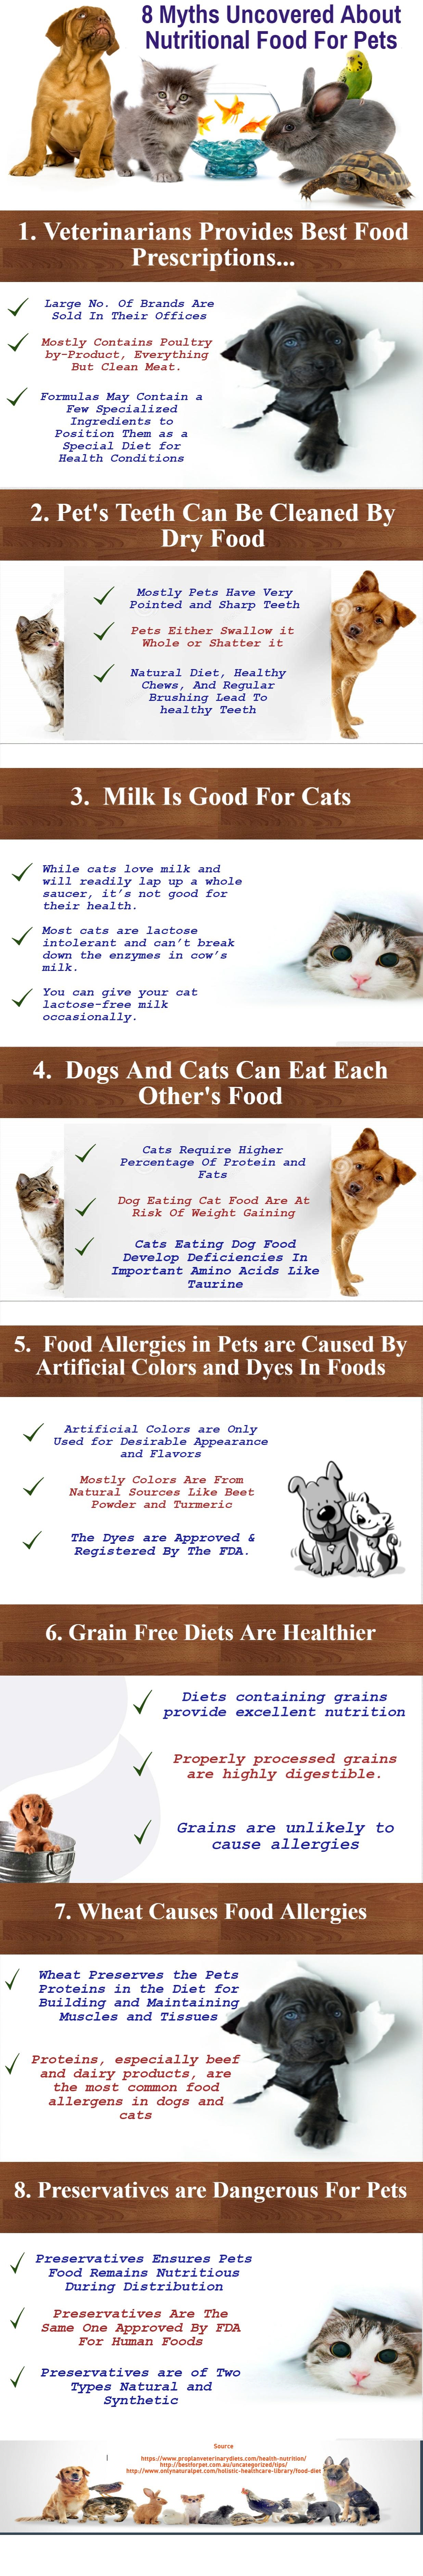 8 Myths Uncovered About Nutritional Food For Pets